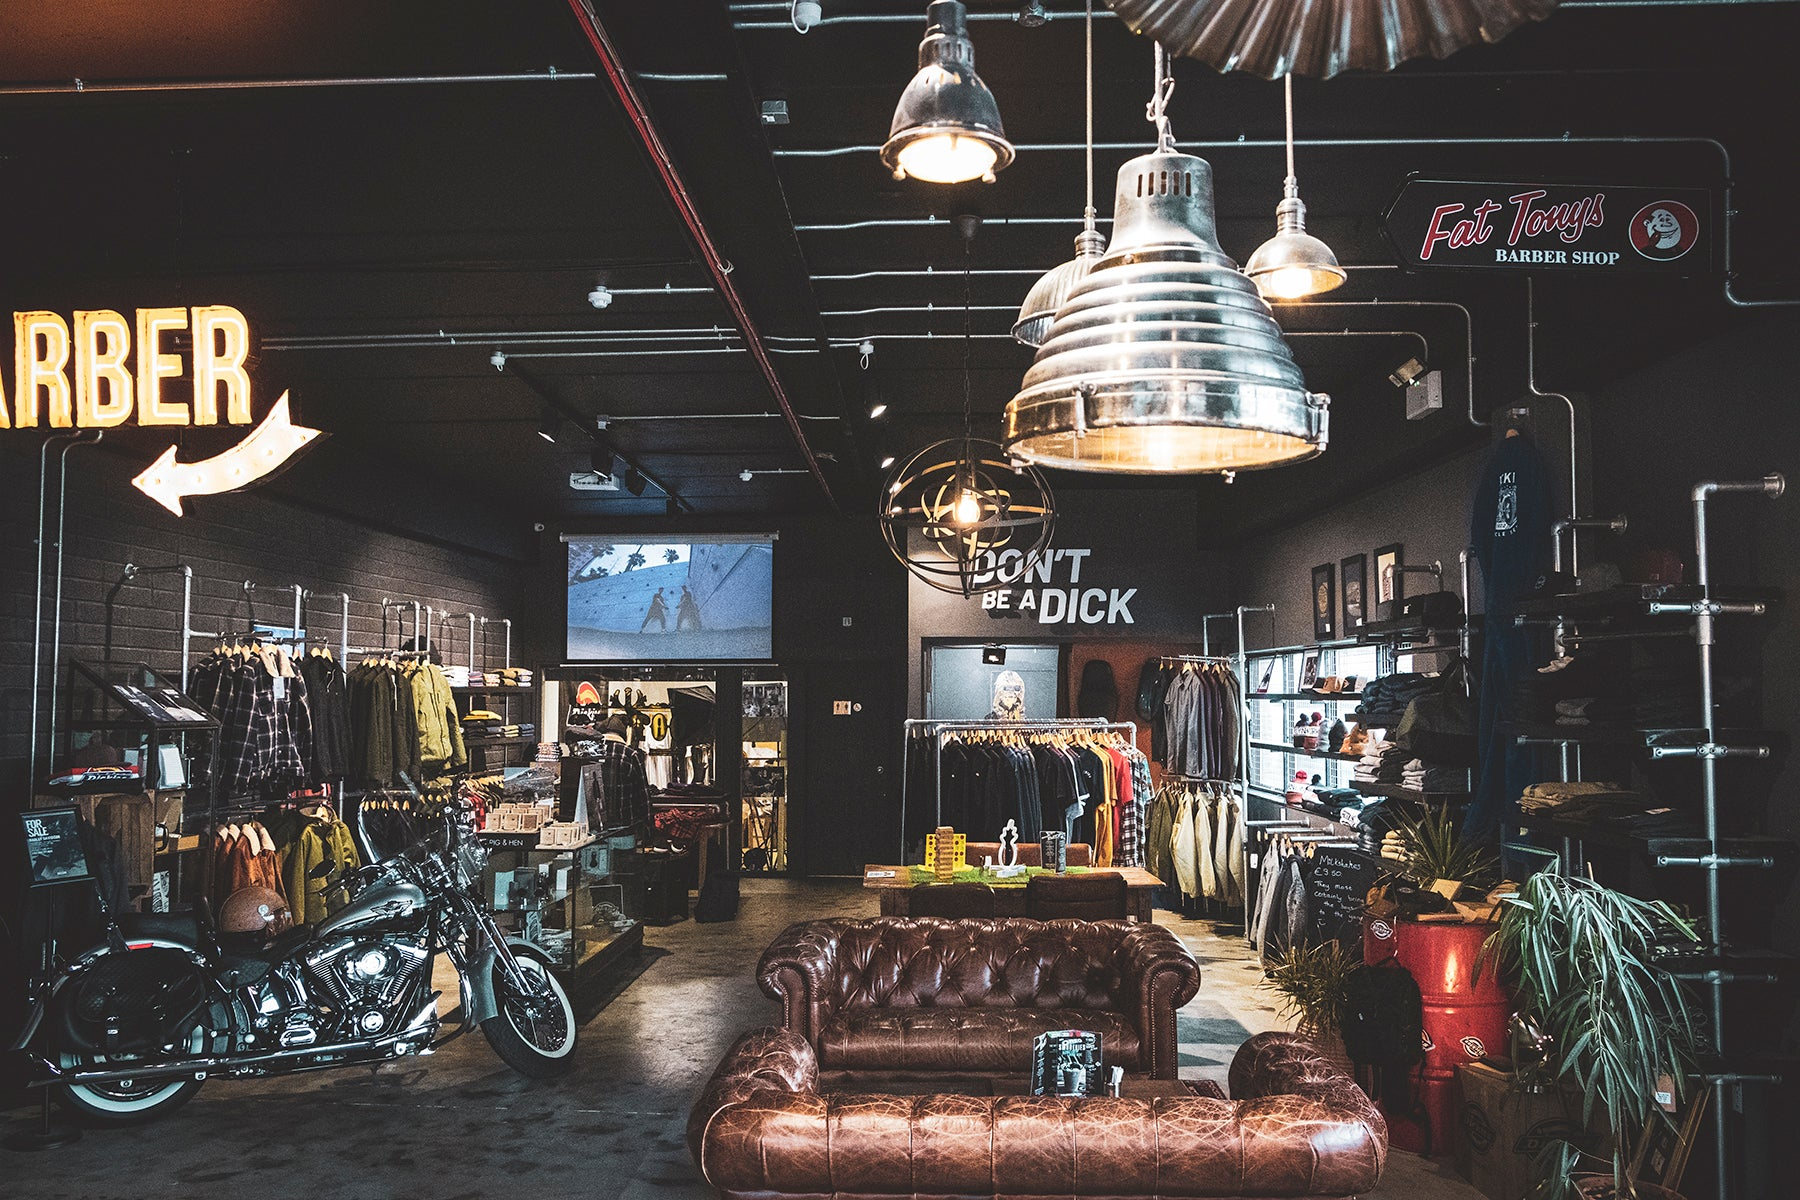 The Lifestyle store with comfy couches and motorbikes.